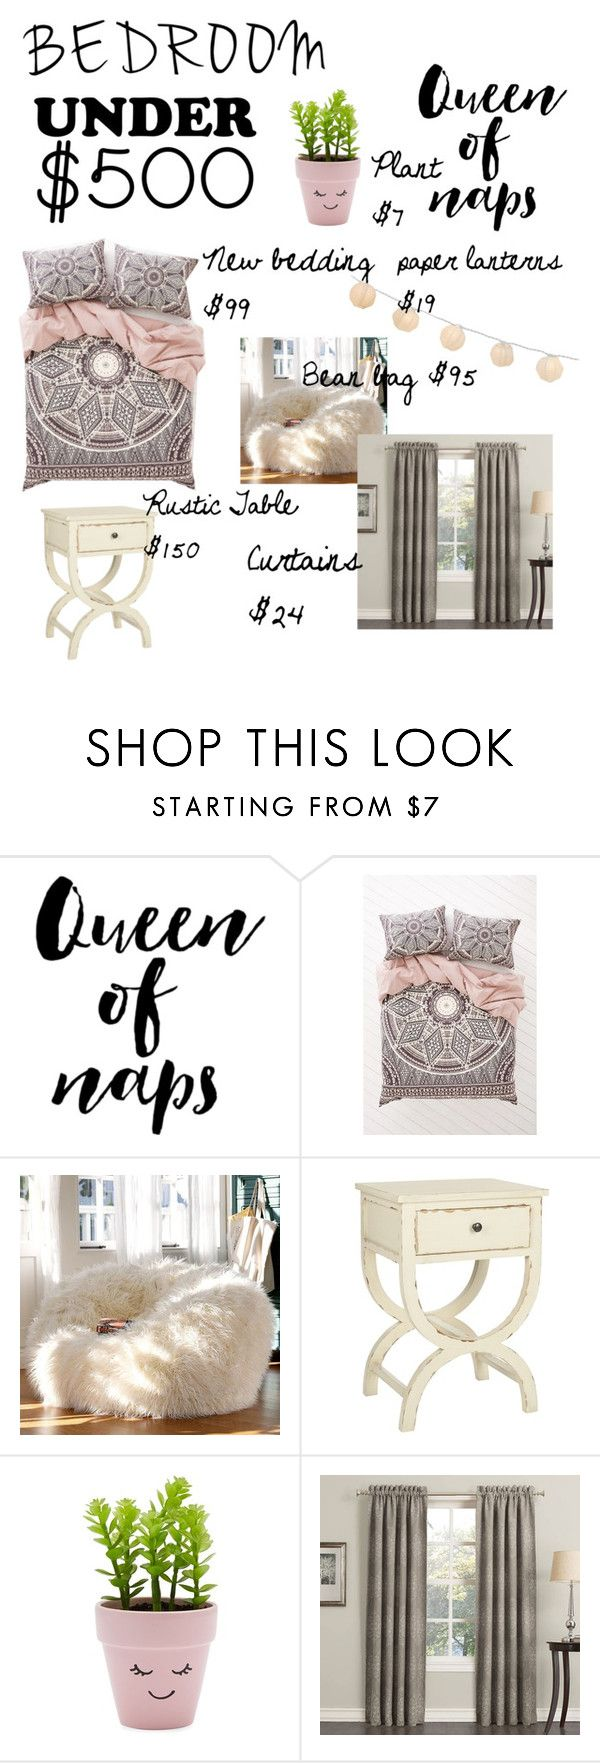 """Bedroom update under $500"" by saharahara-youtube ❤ liked on Polyvore featuring interior, interiors, interior design, home, home decor, interior decorating, Magical Thinking, PBteen, Safavieh and New Look"